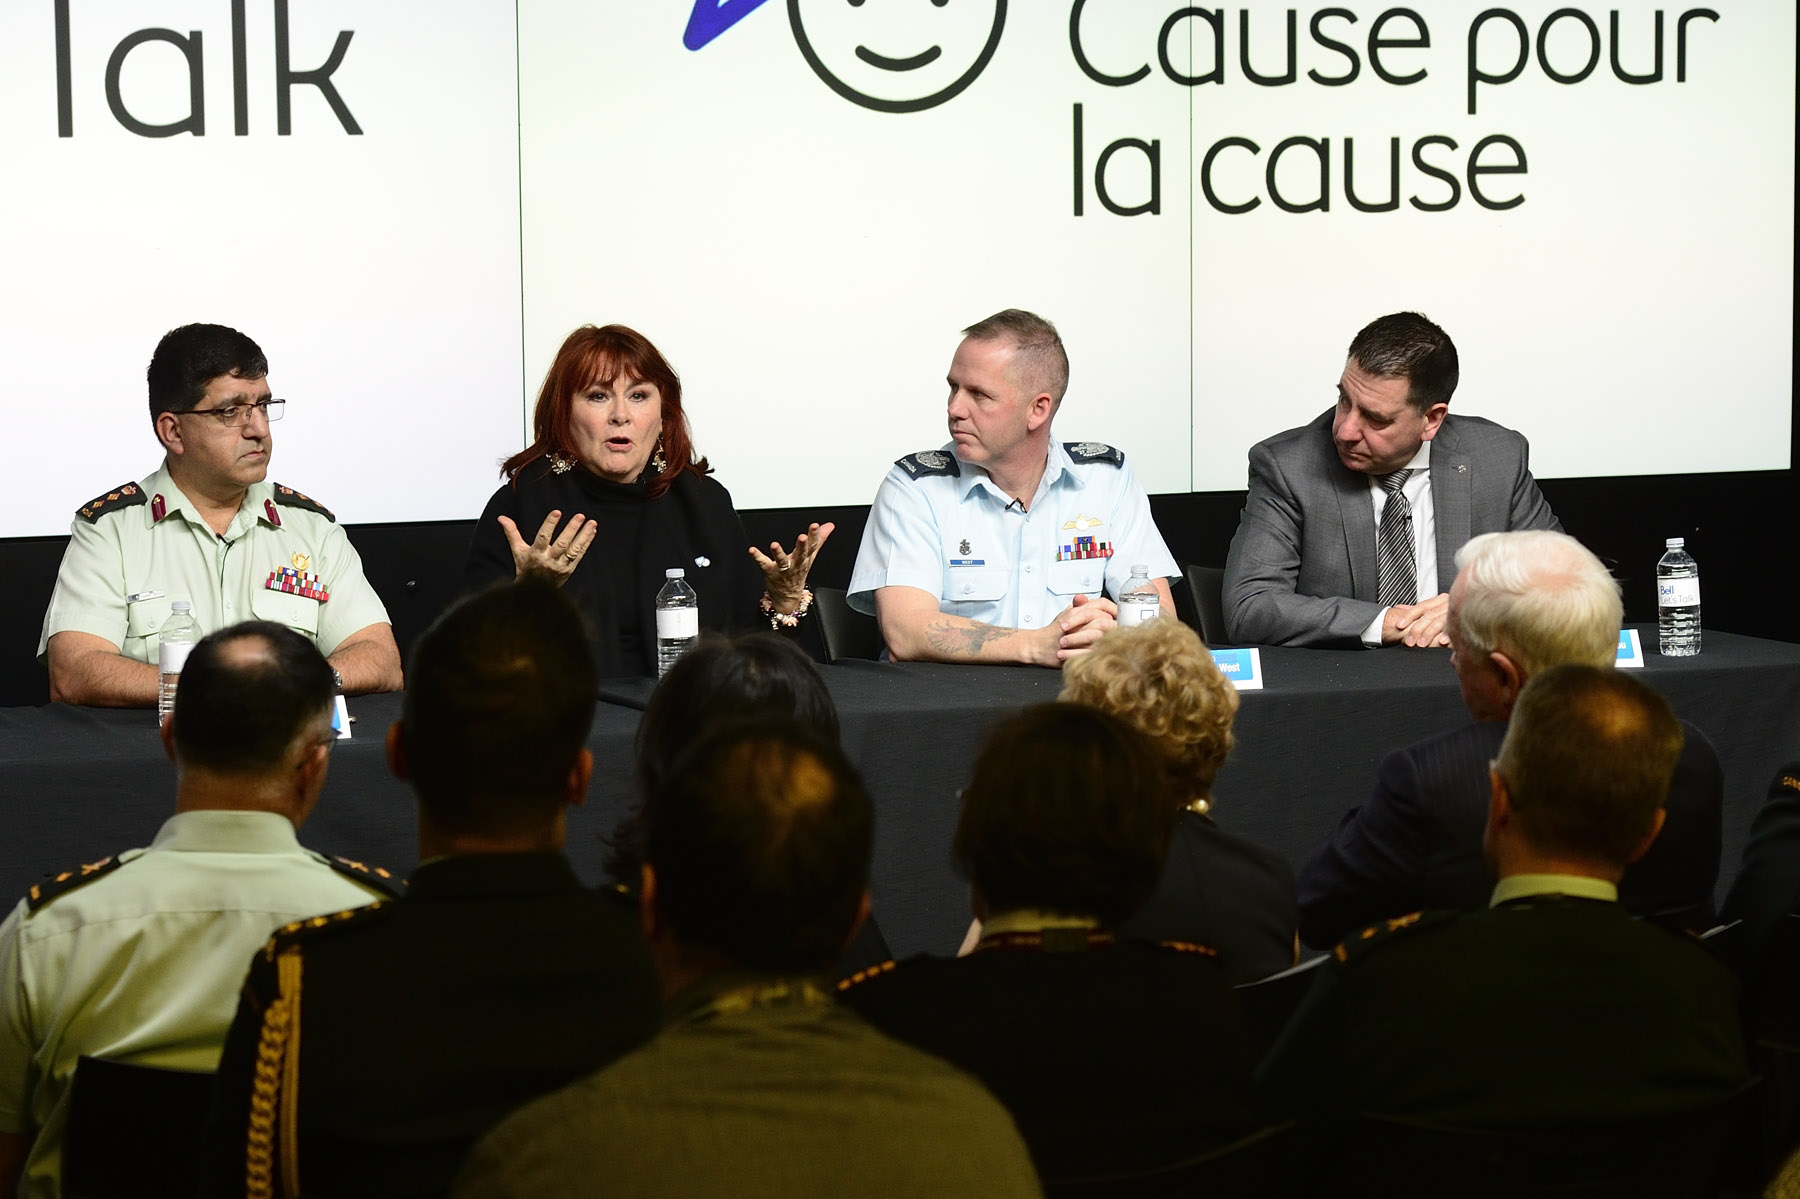 The panelists included Bell Let's Talk spokesperson Mary Walsh, Chief Warrant Officer Kevin West, Colonel Rakesh Jetly, Lieutenant-Commander Lyn Kingsley, and Director General Workplace Management Gilles Moreau.